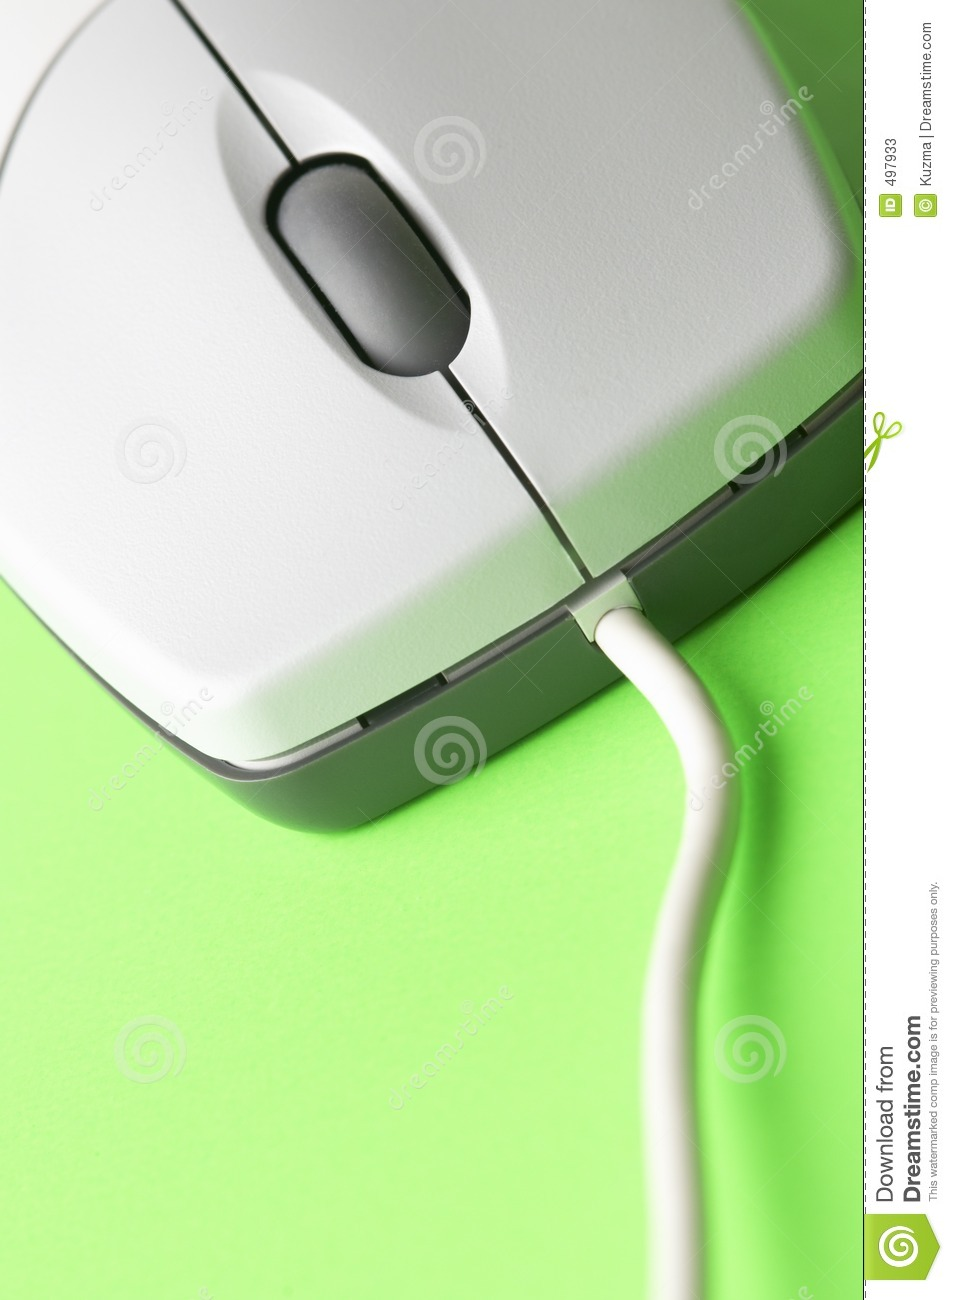 Mouse in macro